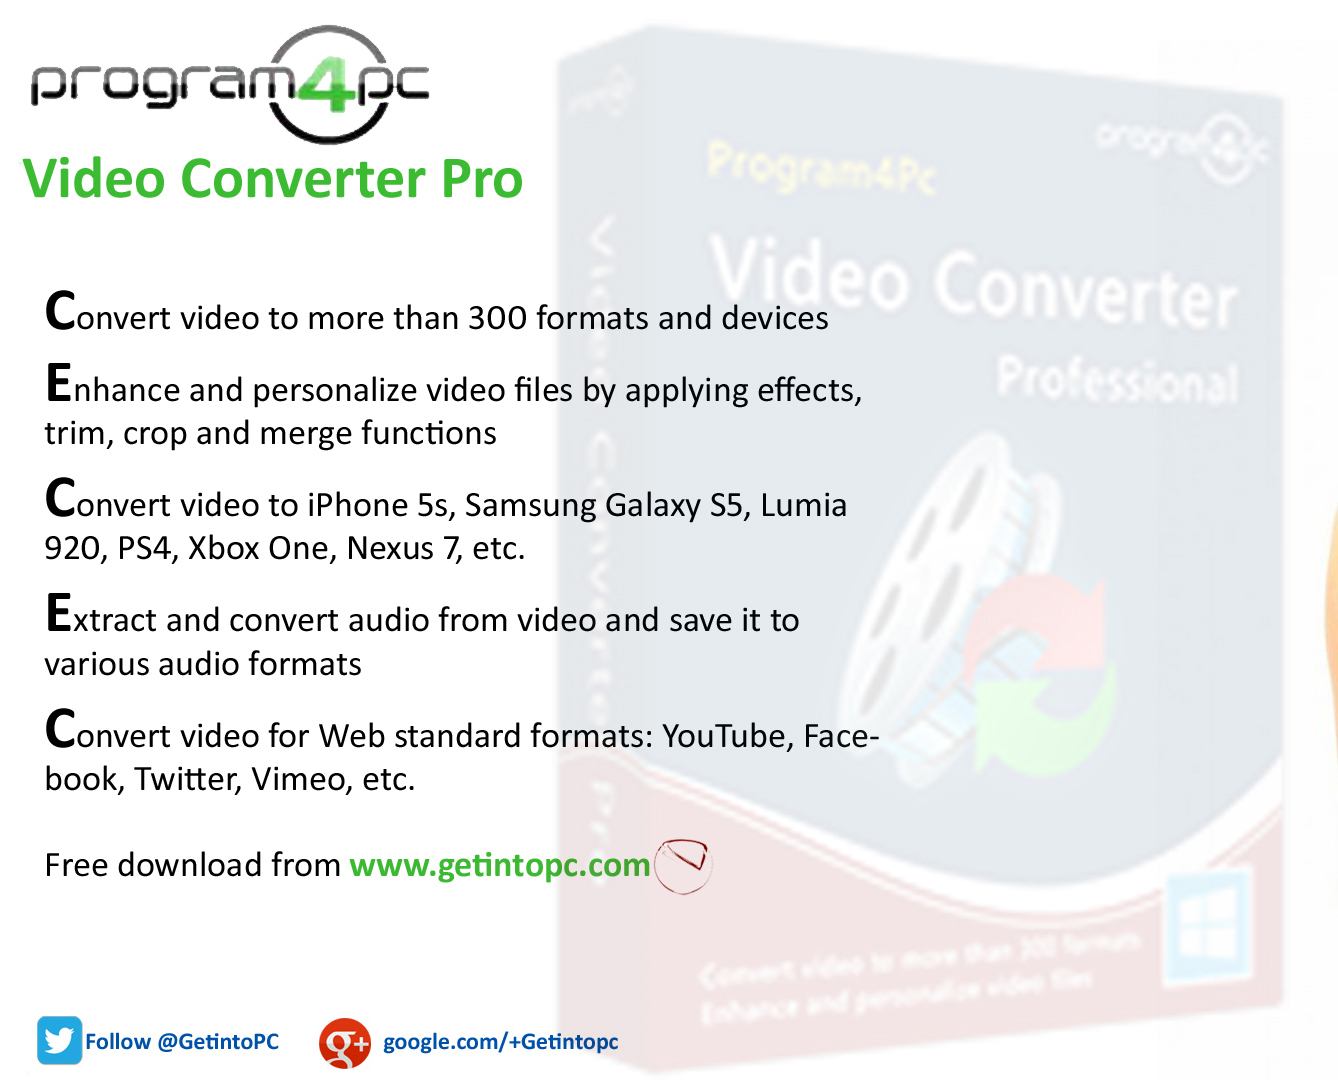 Download Video Convertor Pro Setup exe